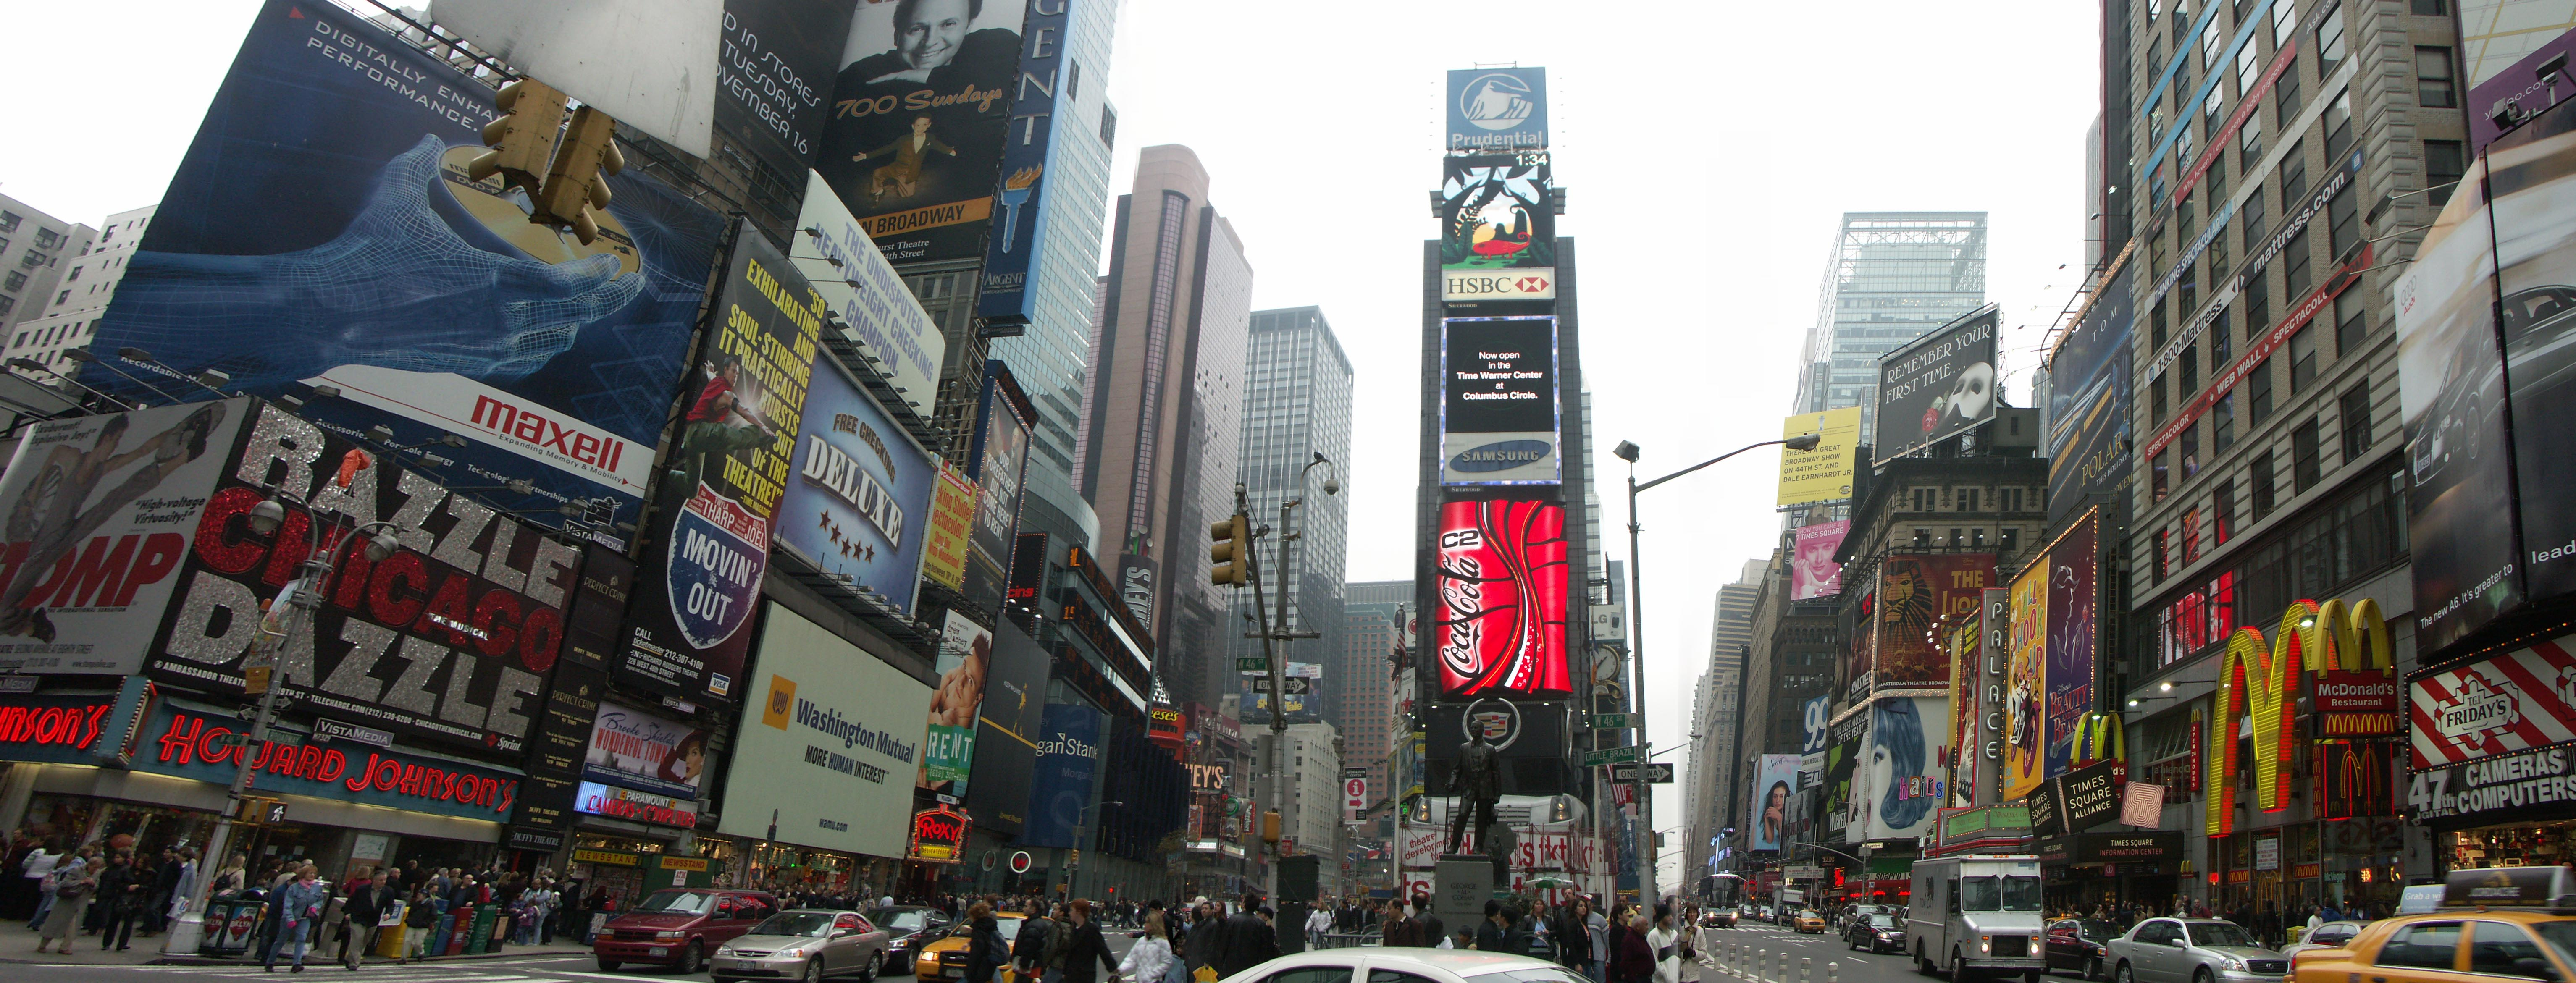 Location Of Ball Drop In Time Square